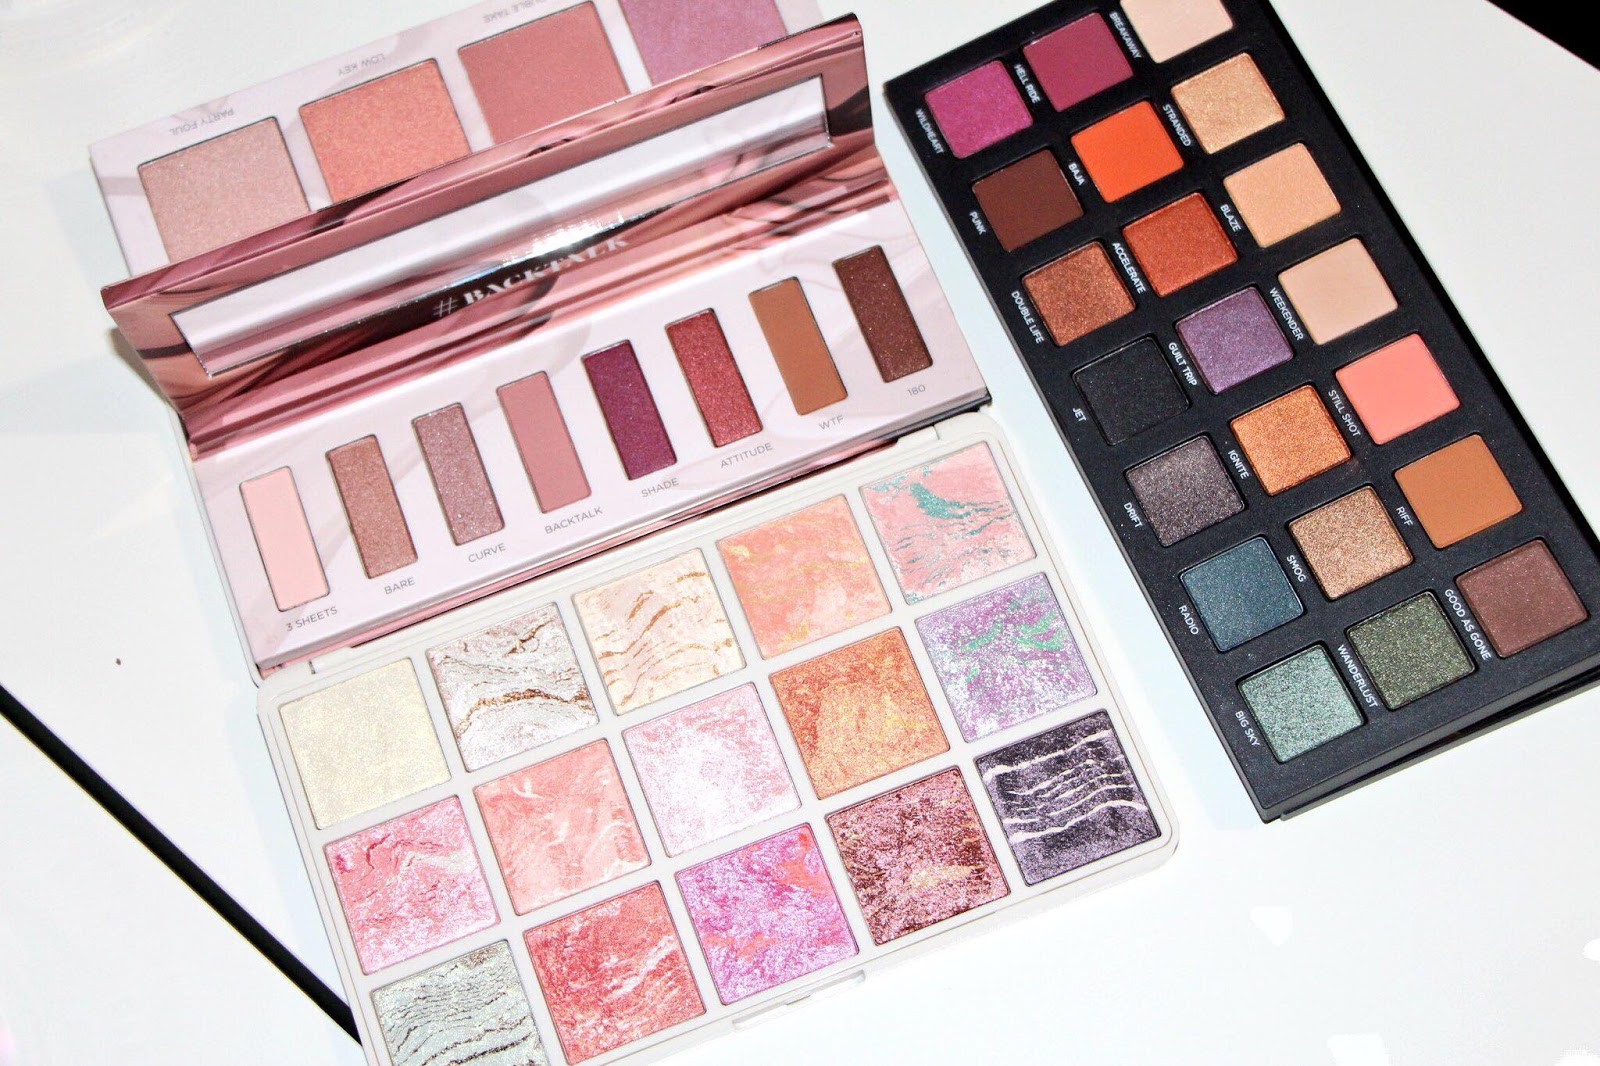 Geri Maree Lets Talk About New Eyeshadow Palettes Mecca Maxima